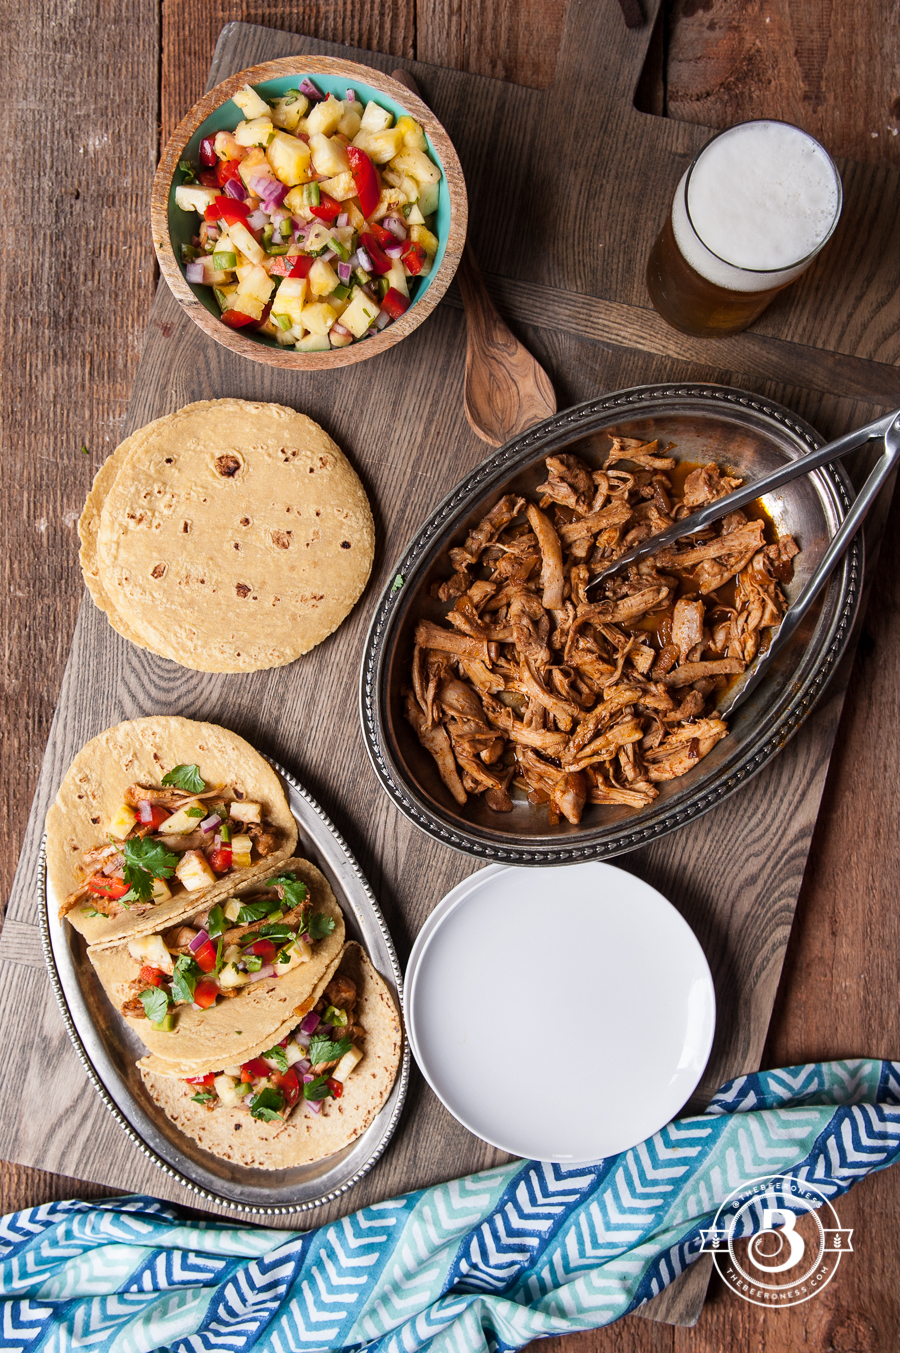 Chili Beer Chicken Tacos with Pineapple Salsa1